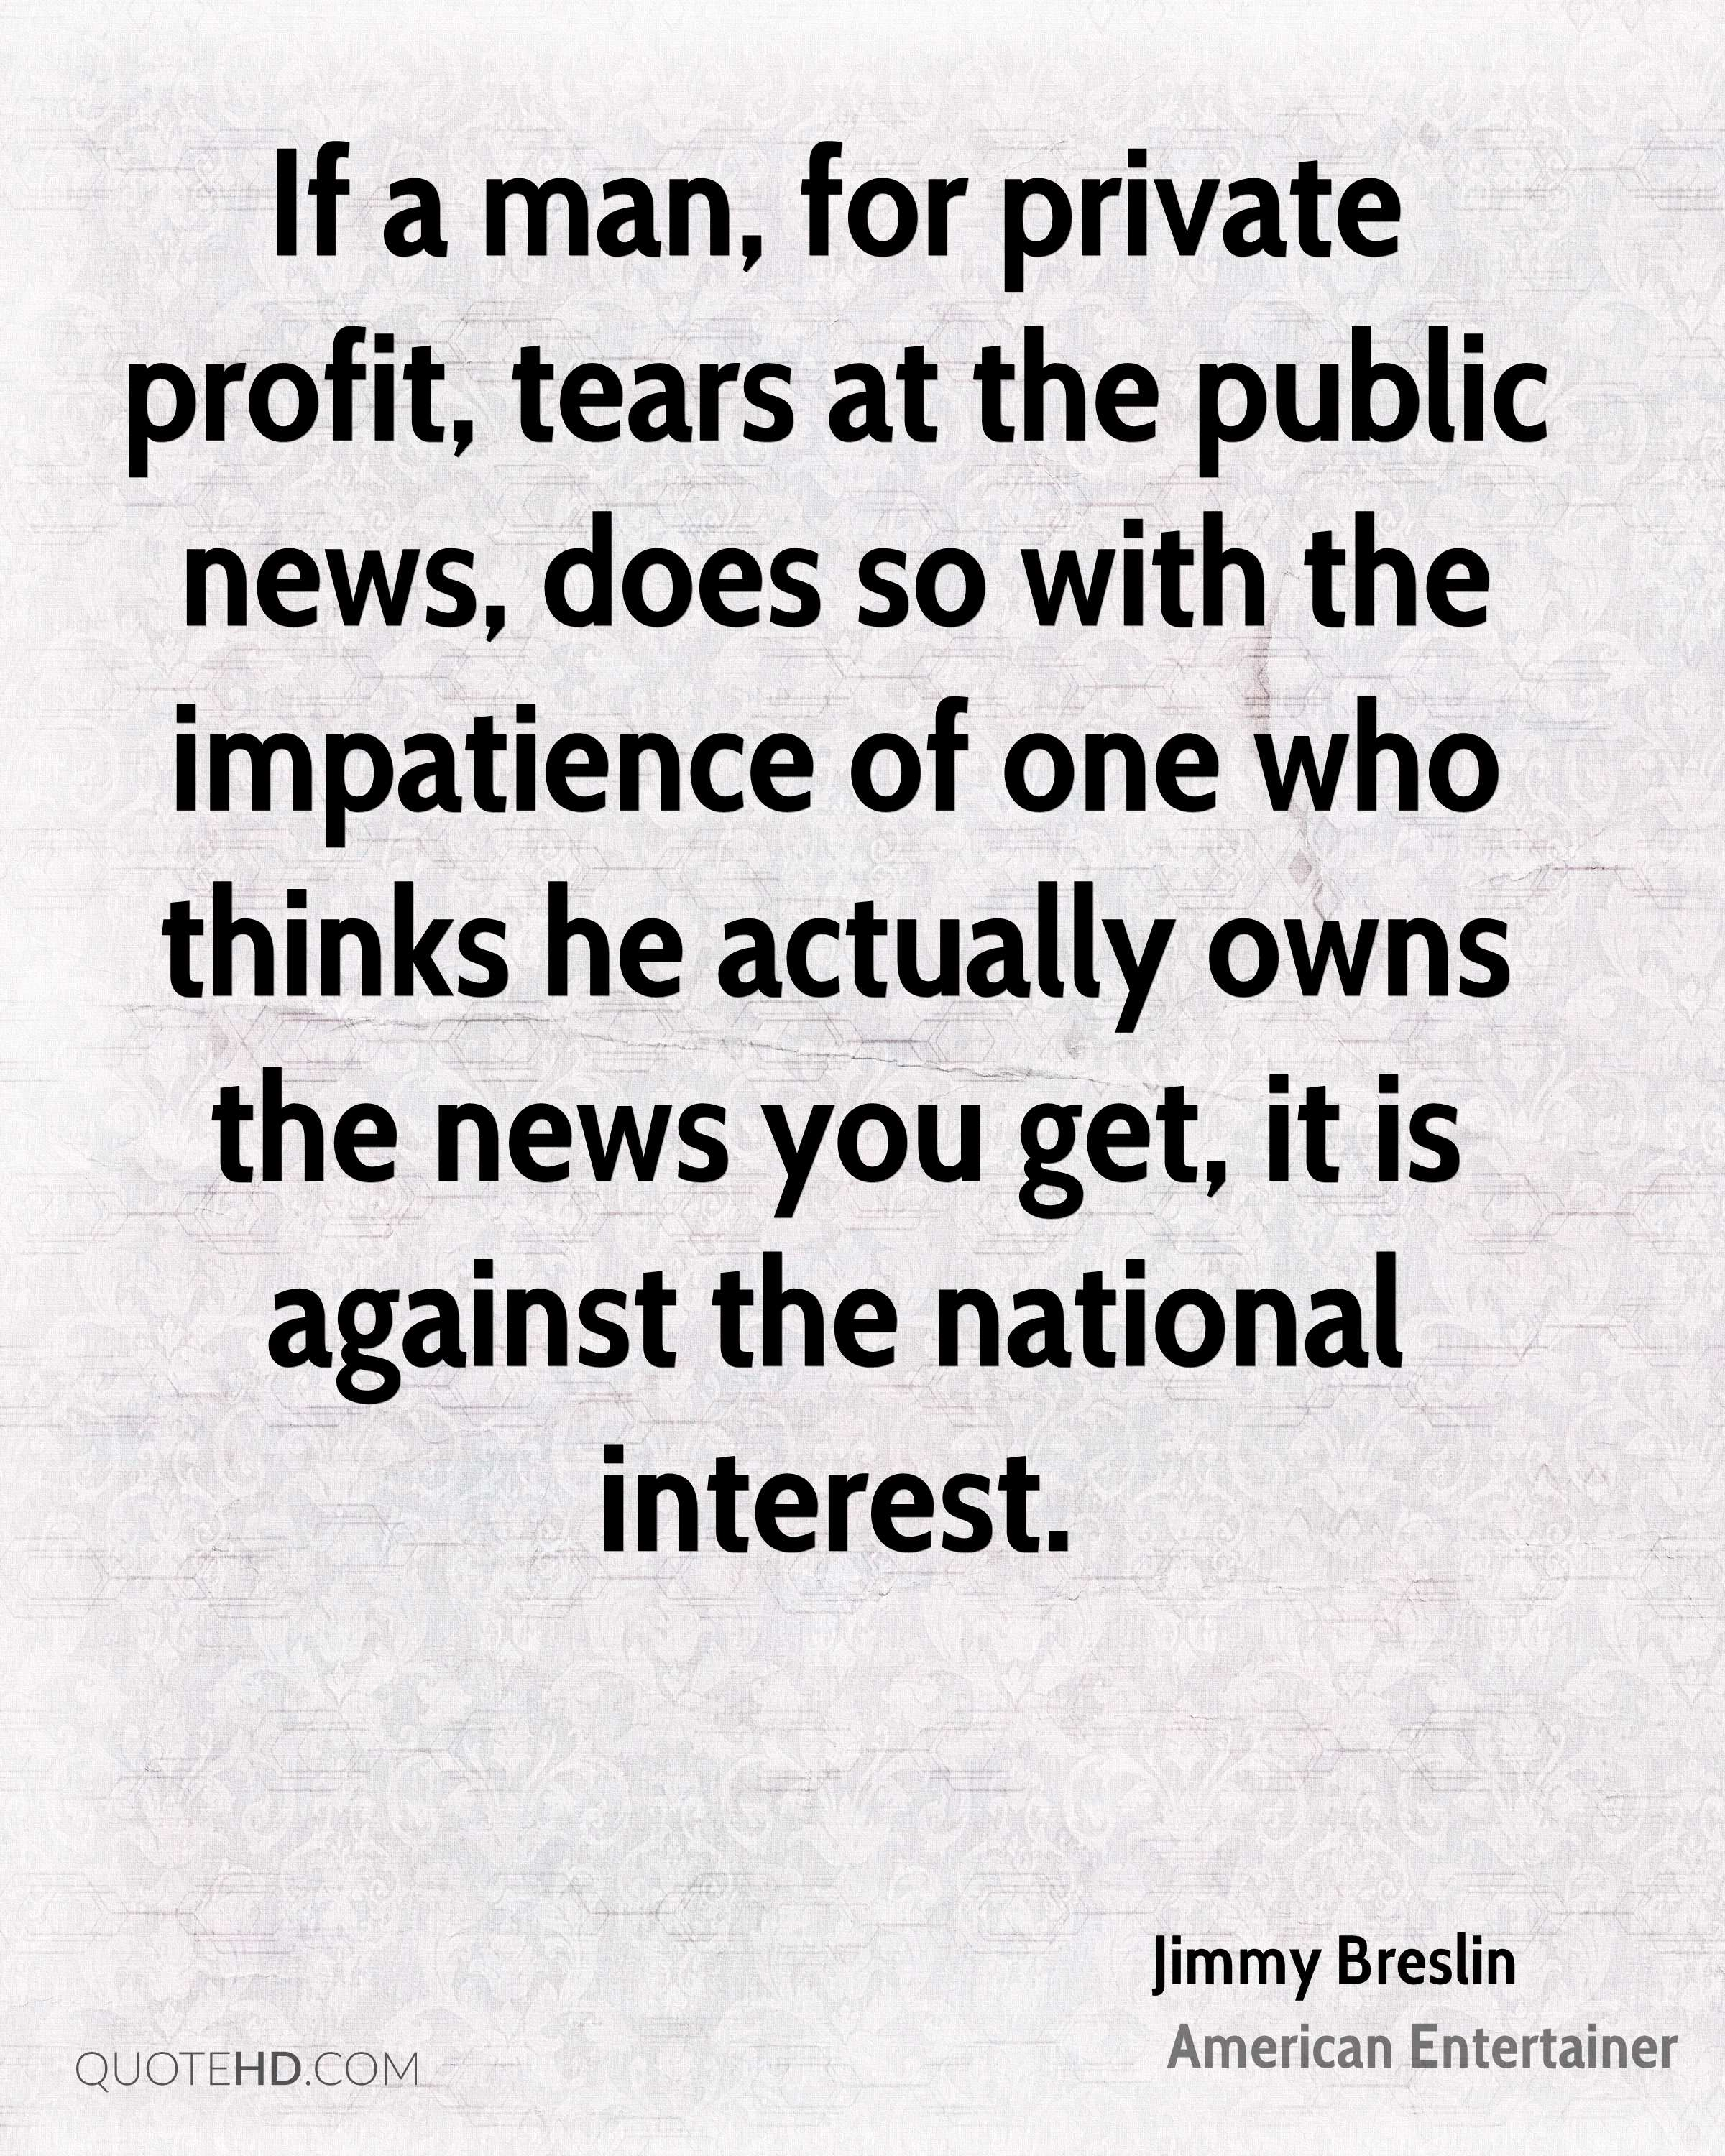 If a man, for private profit, tears at the public news, does so with the impatience of one who thinks he actually owns the news you get, it is against the national interest.